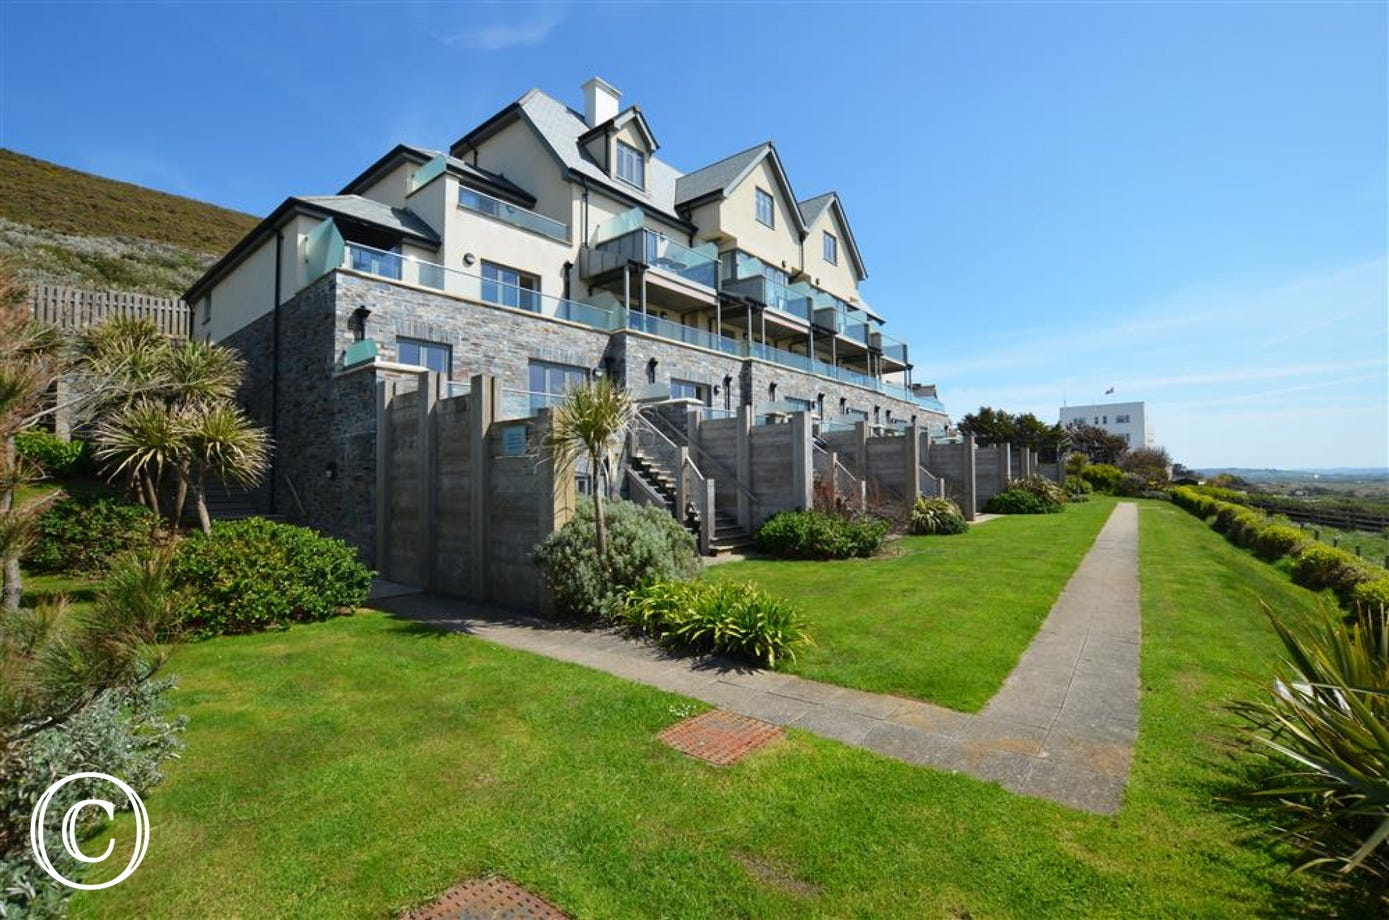 Ocean Point is situated on the cliff top with unbelievable seaviews